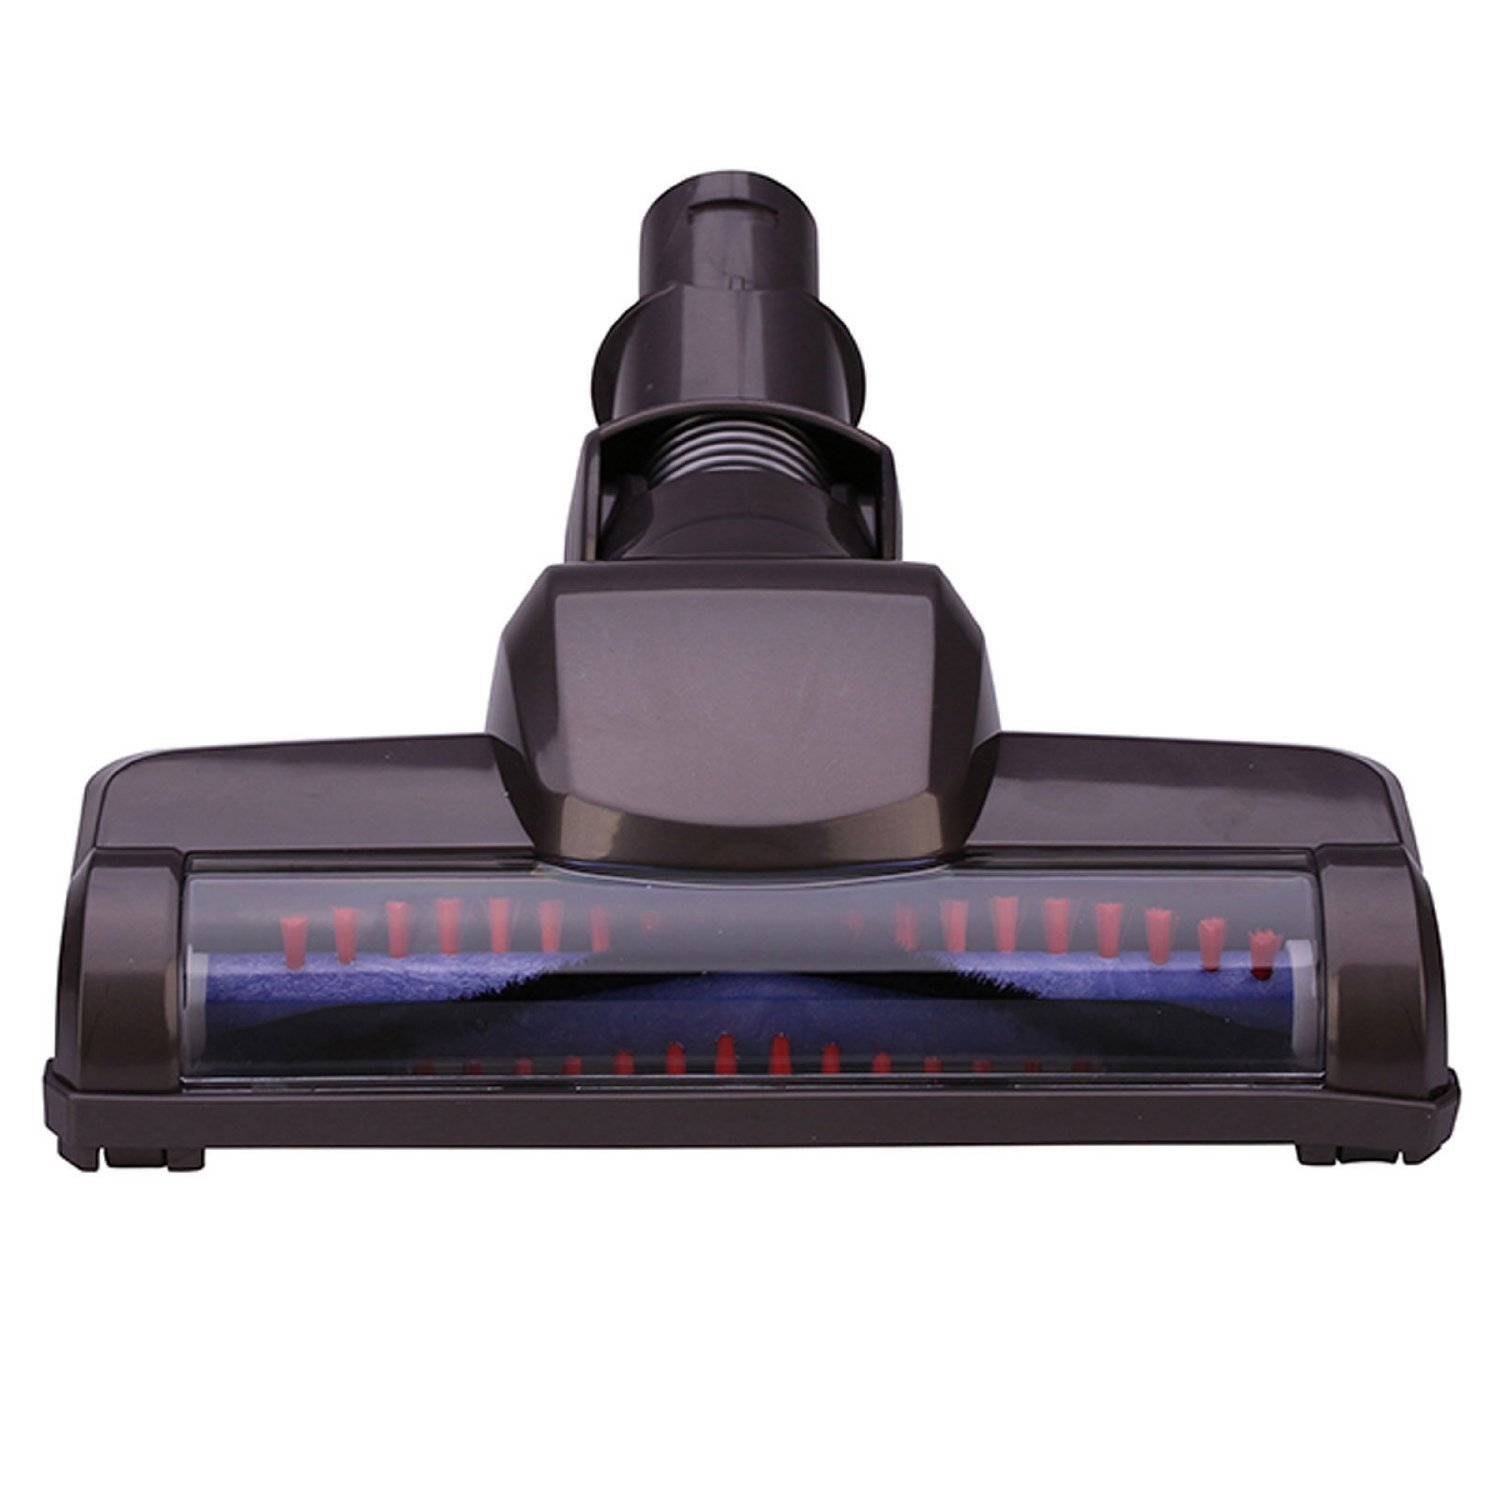 First4Spares Handheld Cordless Cord Free Vacuum Cleaner Motorized Tool Swivel Head Turbo Brush for Dyson DC59